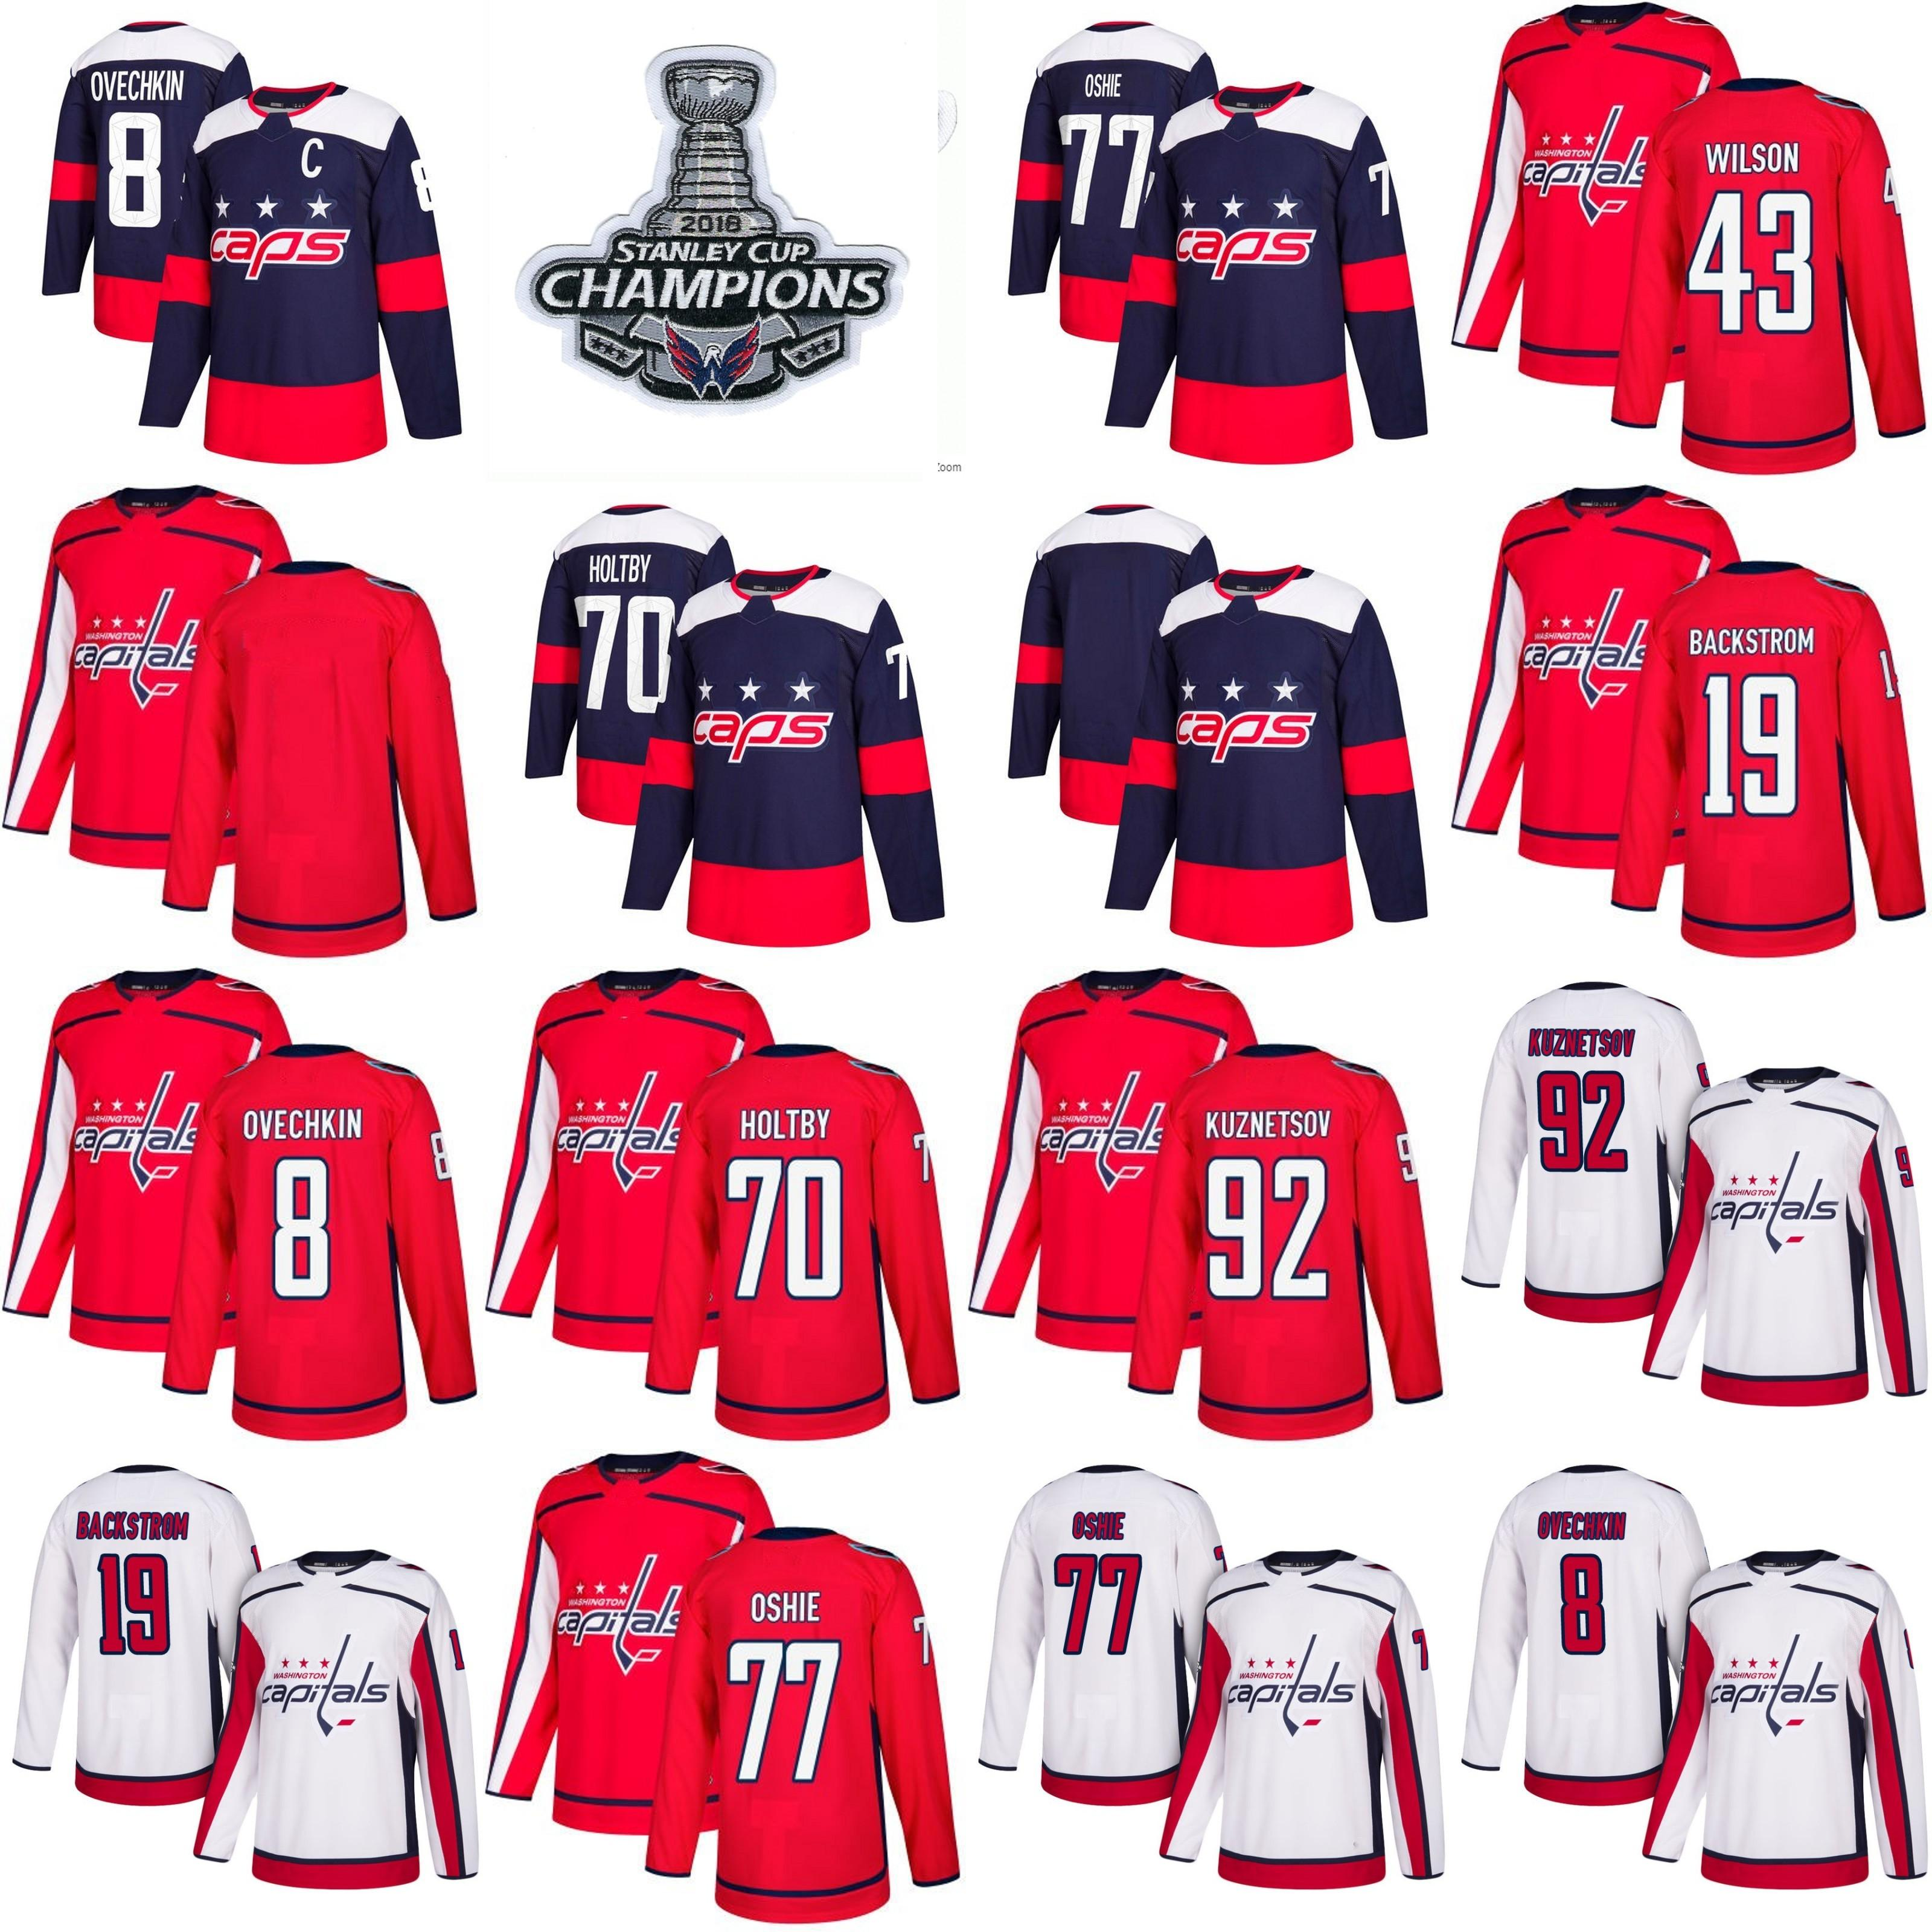 new product 9cd82 56f91 2018 Stanley Cup Champions Youth women Capitals 8 Alex Ovechkin 77 TJ Oshie  70 Braden Holtby 92 Kuznetsov 43 Tom Wilson Backstrom Jerseys